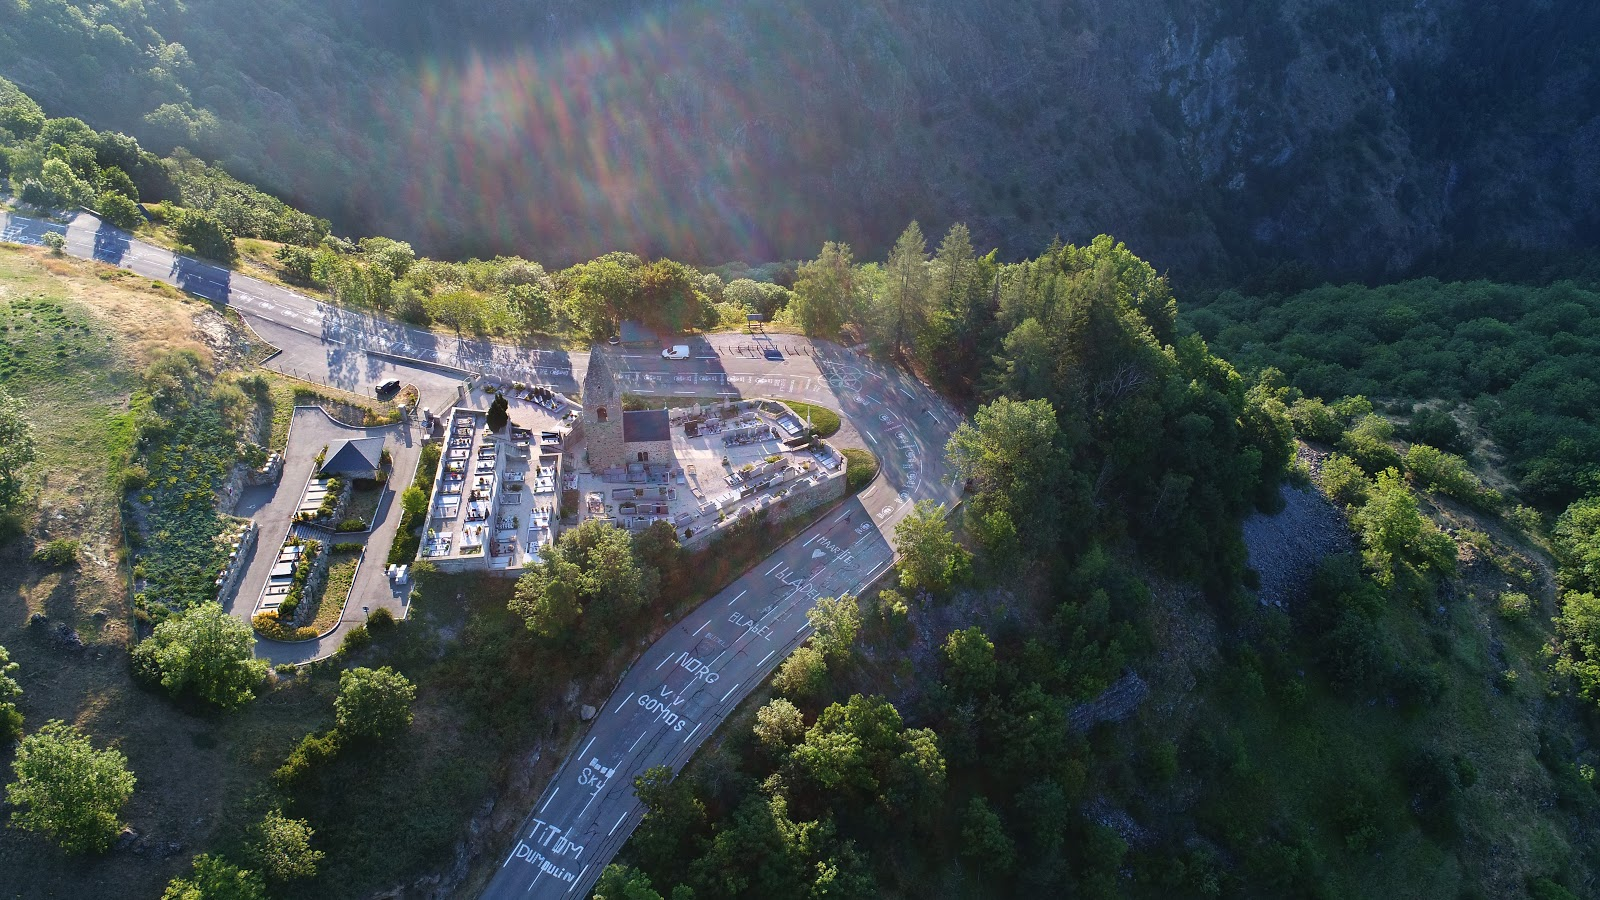 Cycling Alpe d'Huez - Dutch Corner from aerial drone view